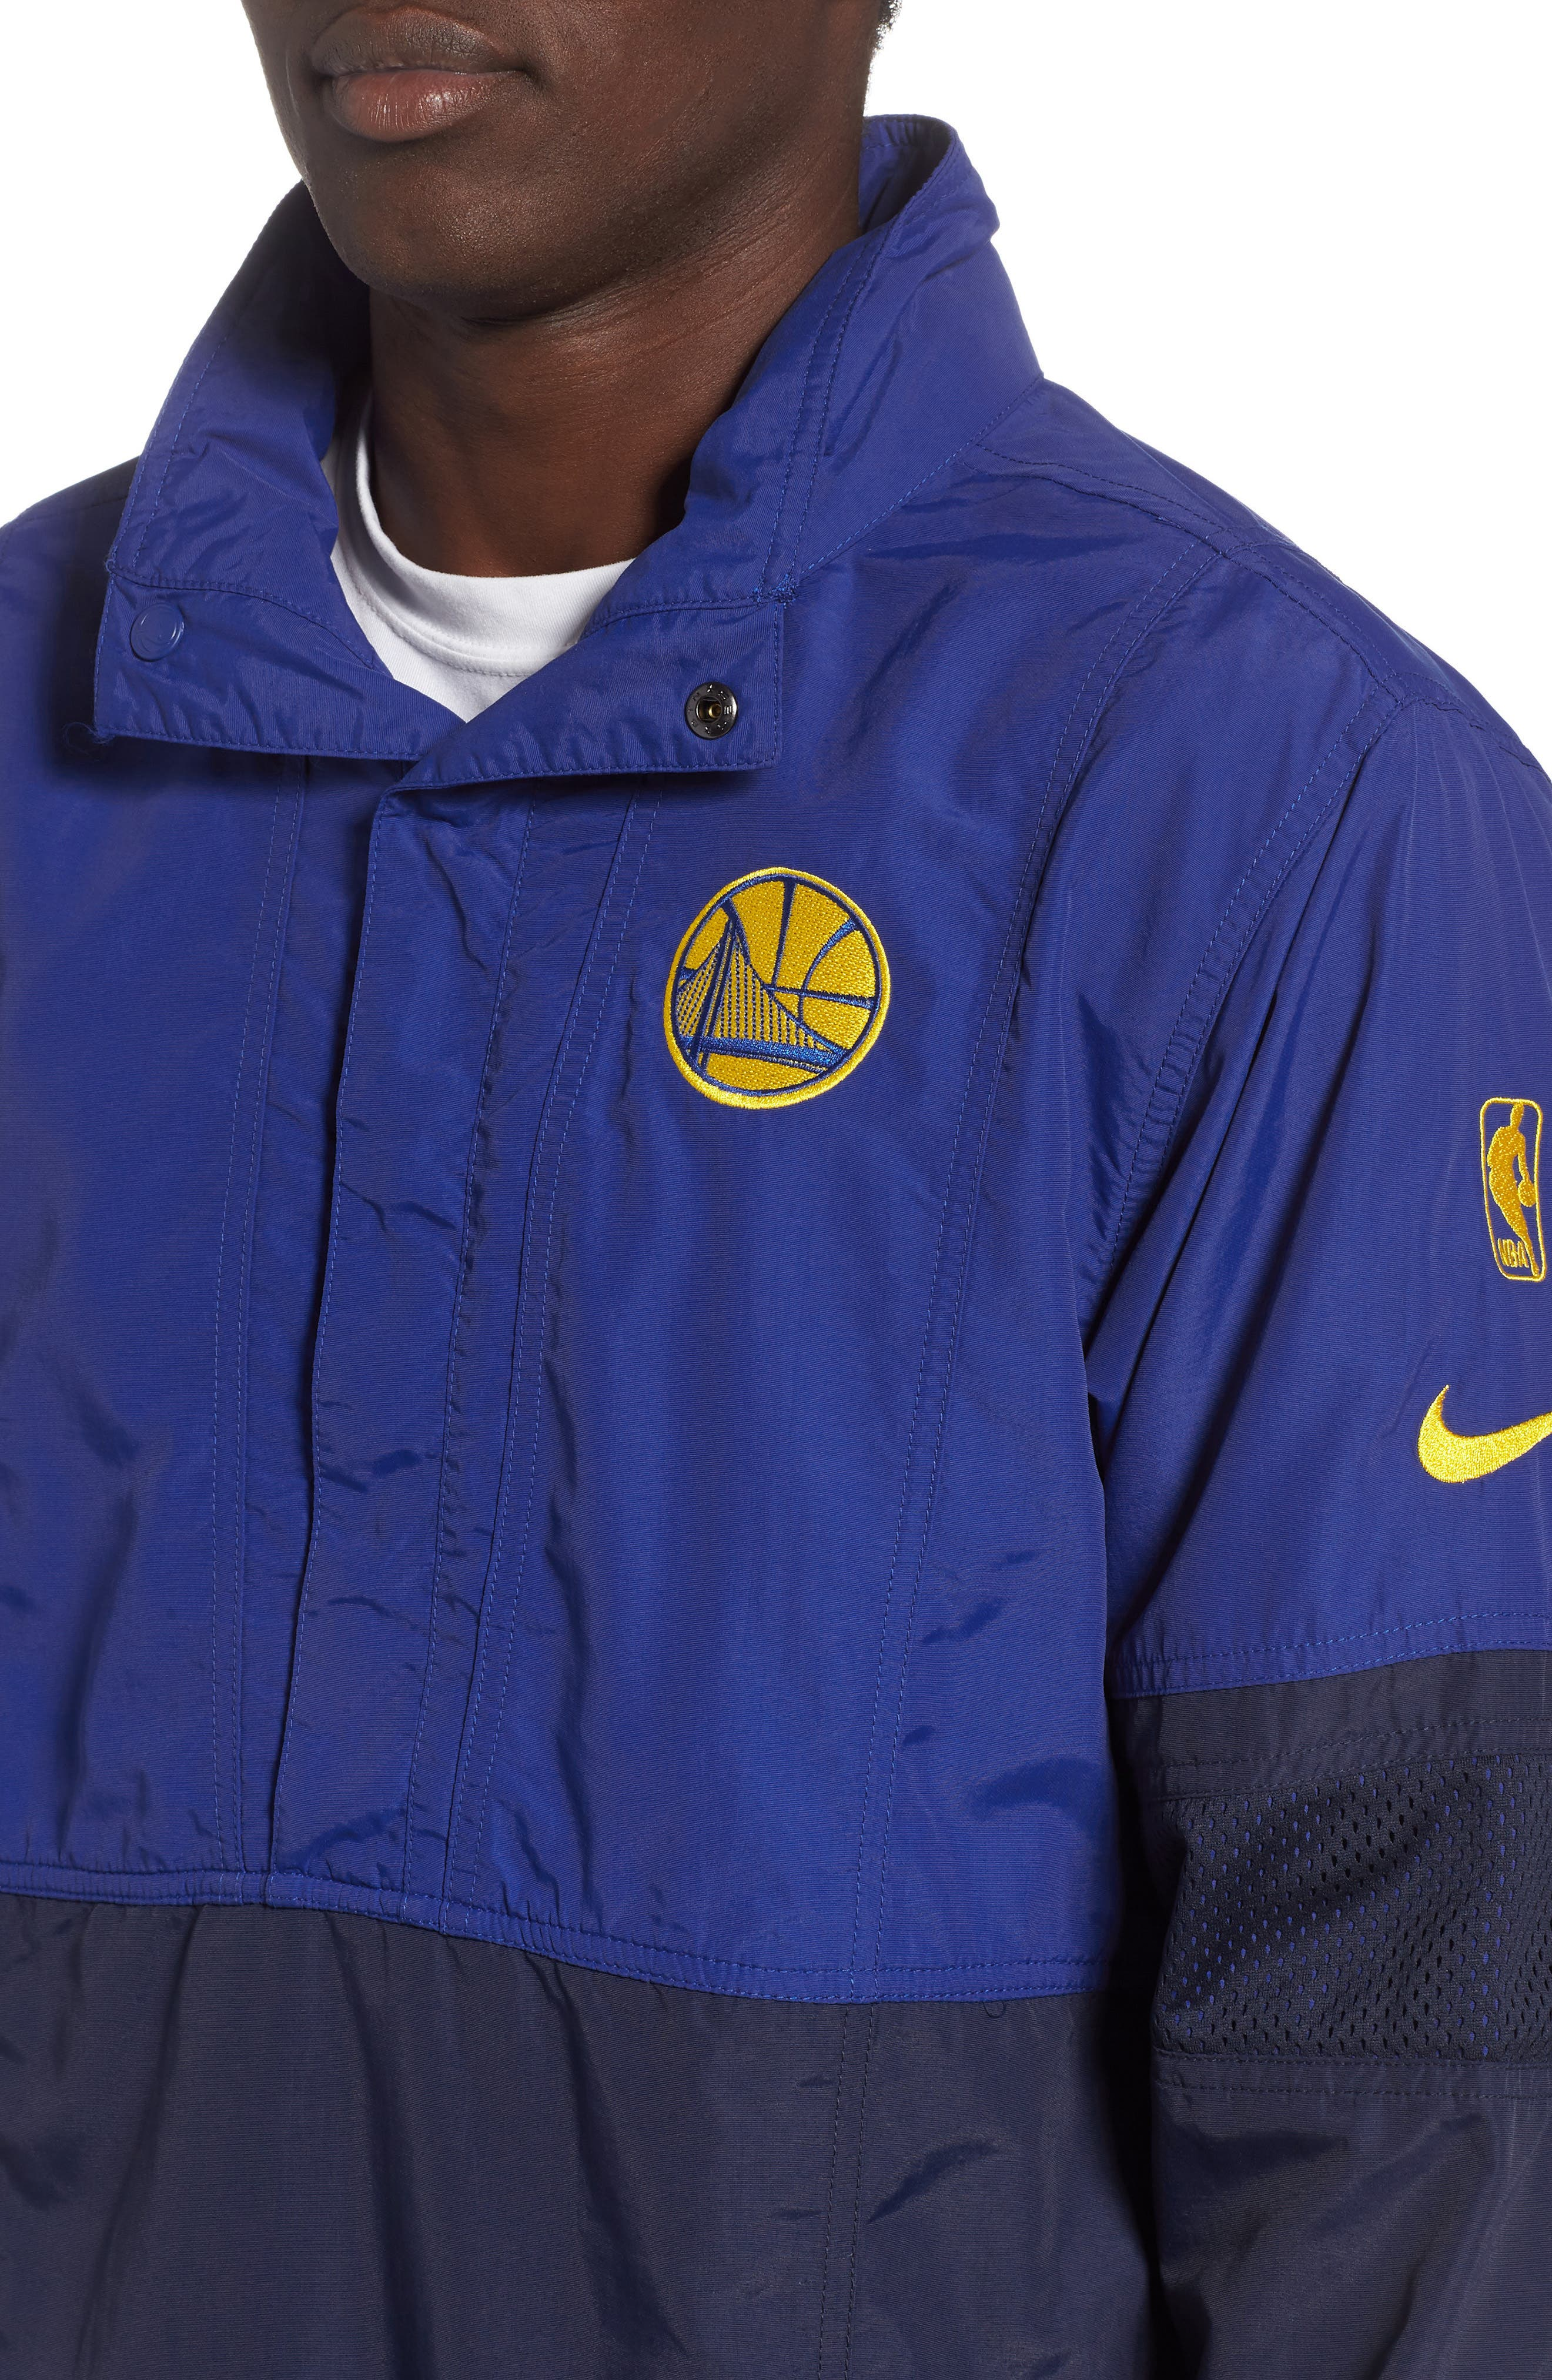 Golden State Warriors Courtside Warm-Up Jacket,                             Alternate thumbnail 4, color,                             RUSH BLUE/ NAVY/ AMARILLO